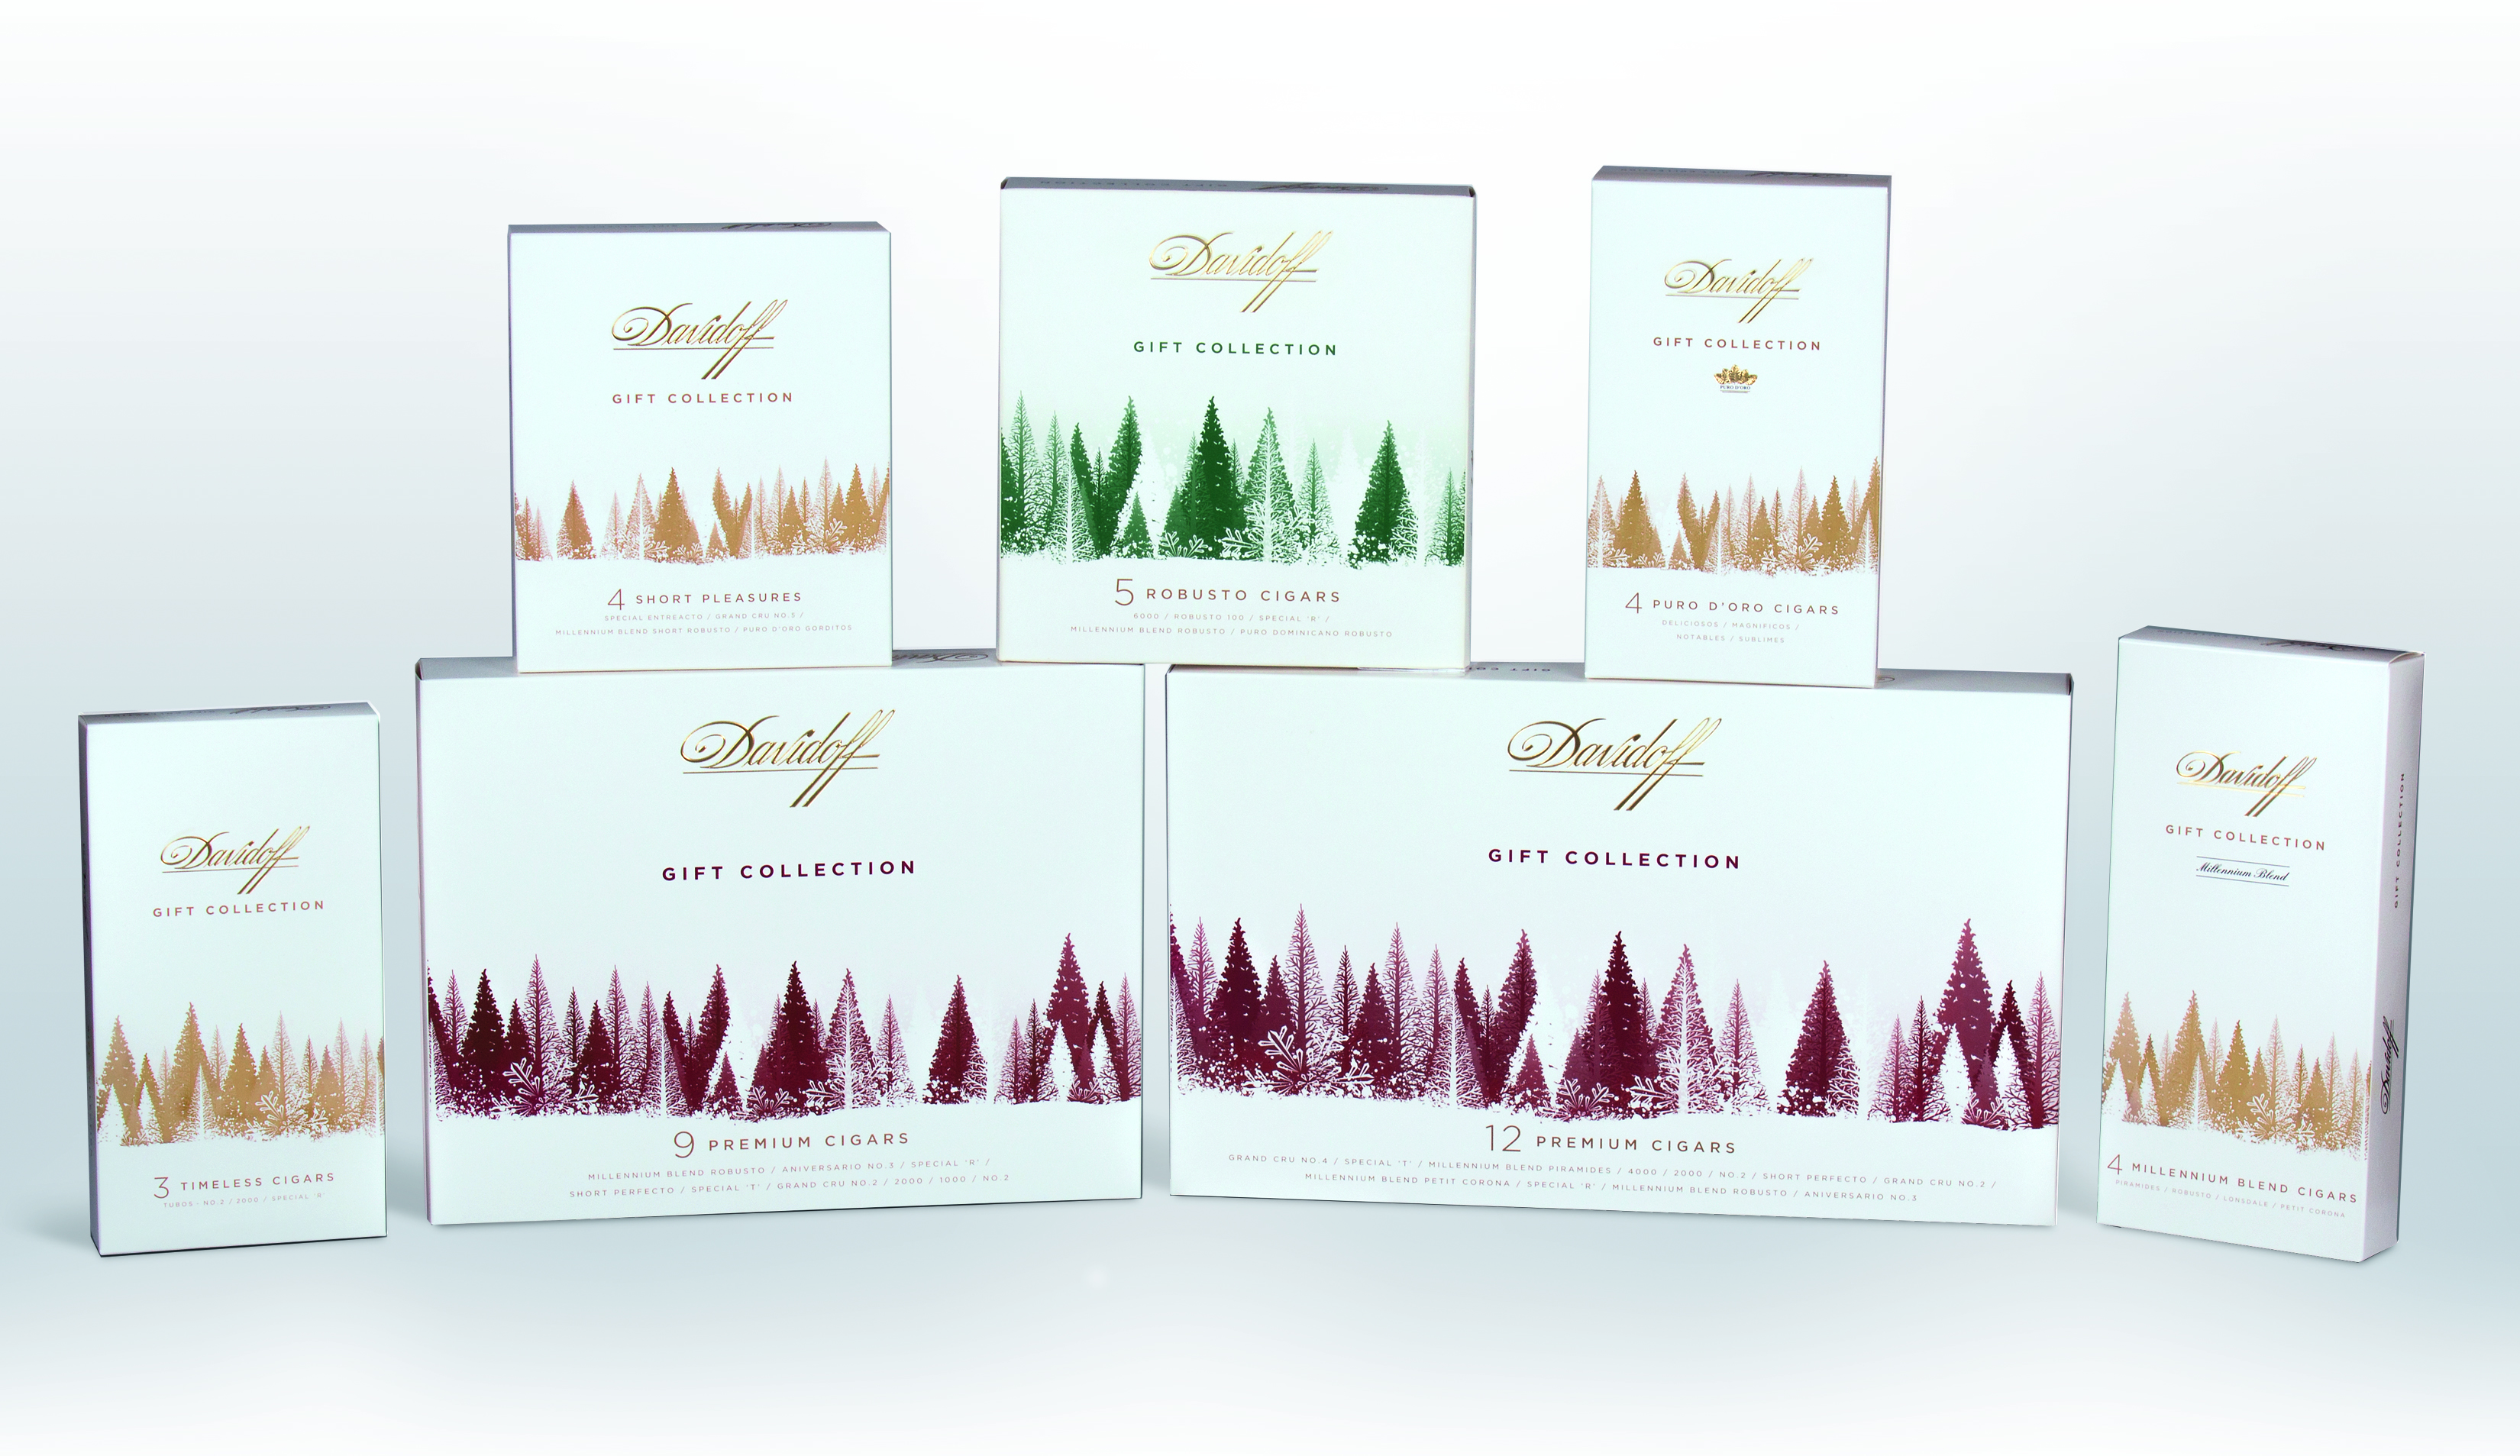 Davidoff Holiday Gifts 2013-1